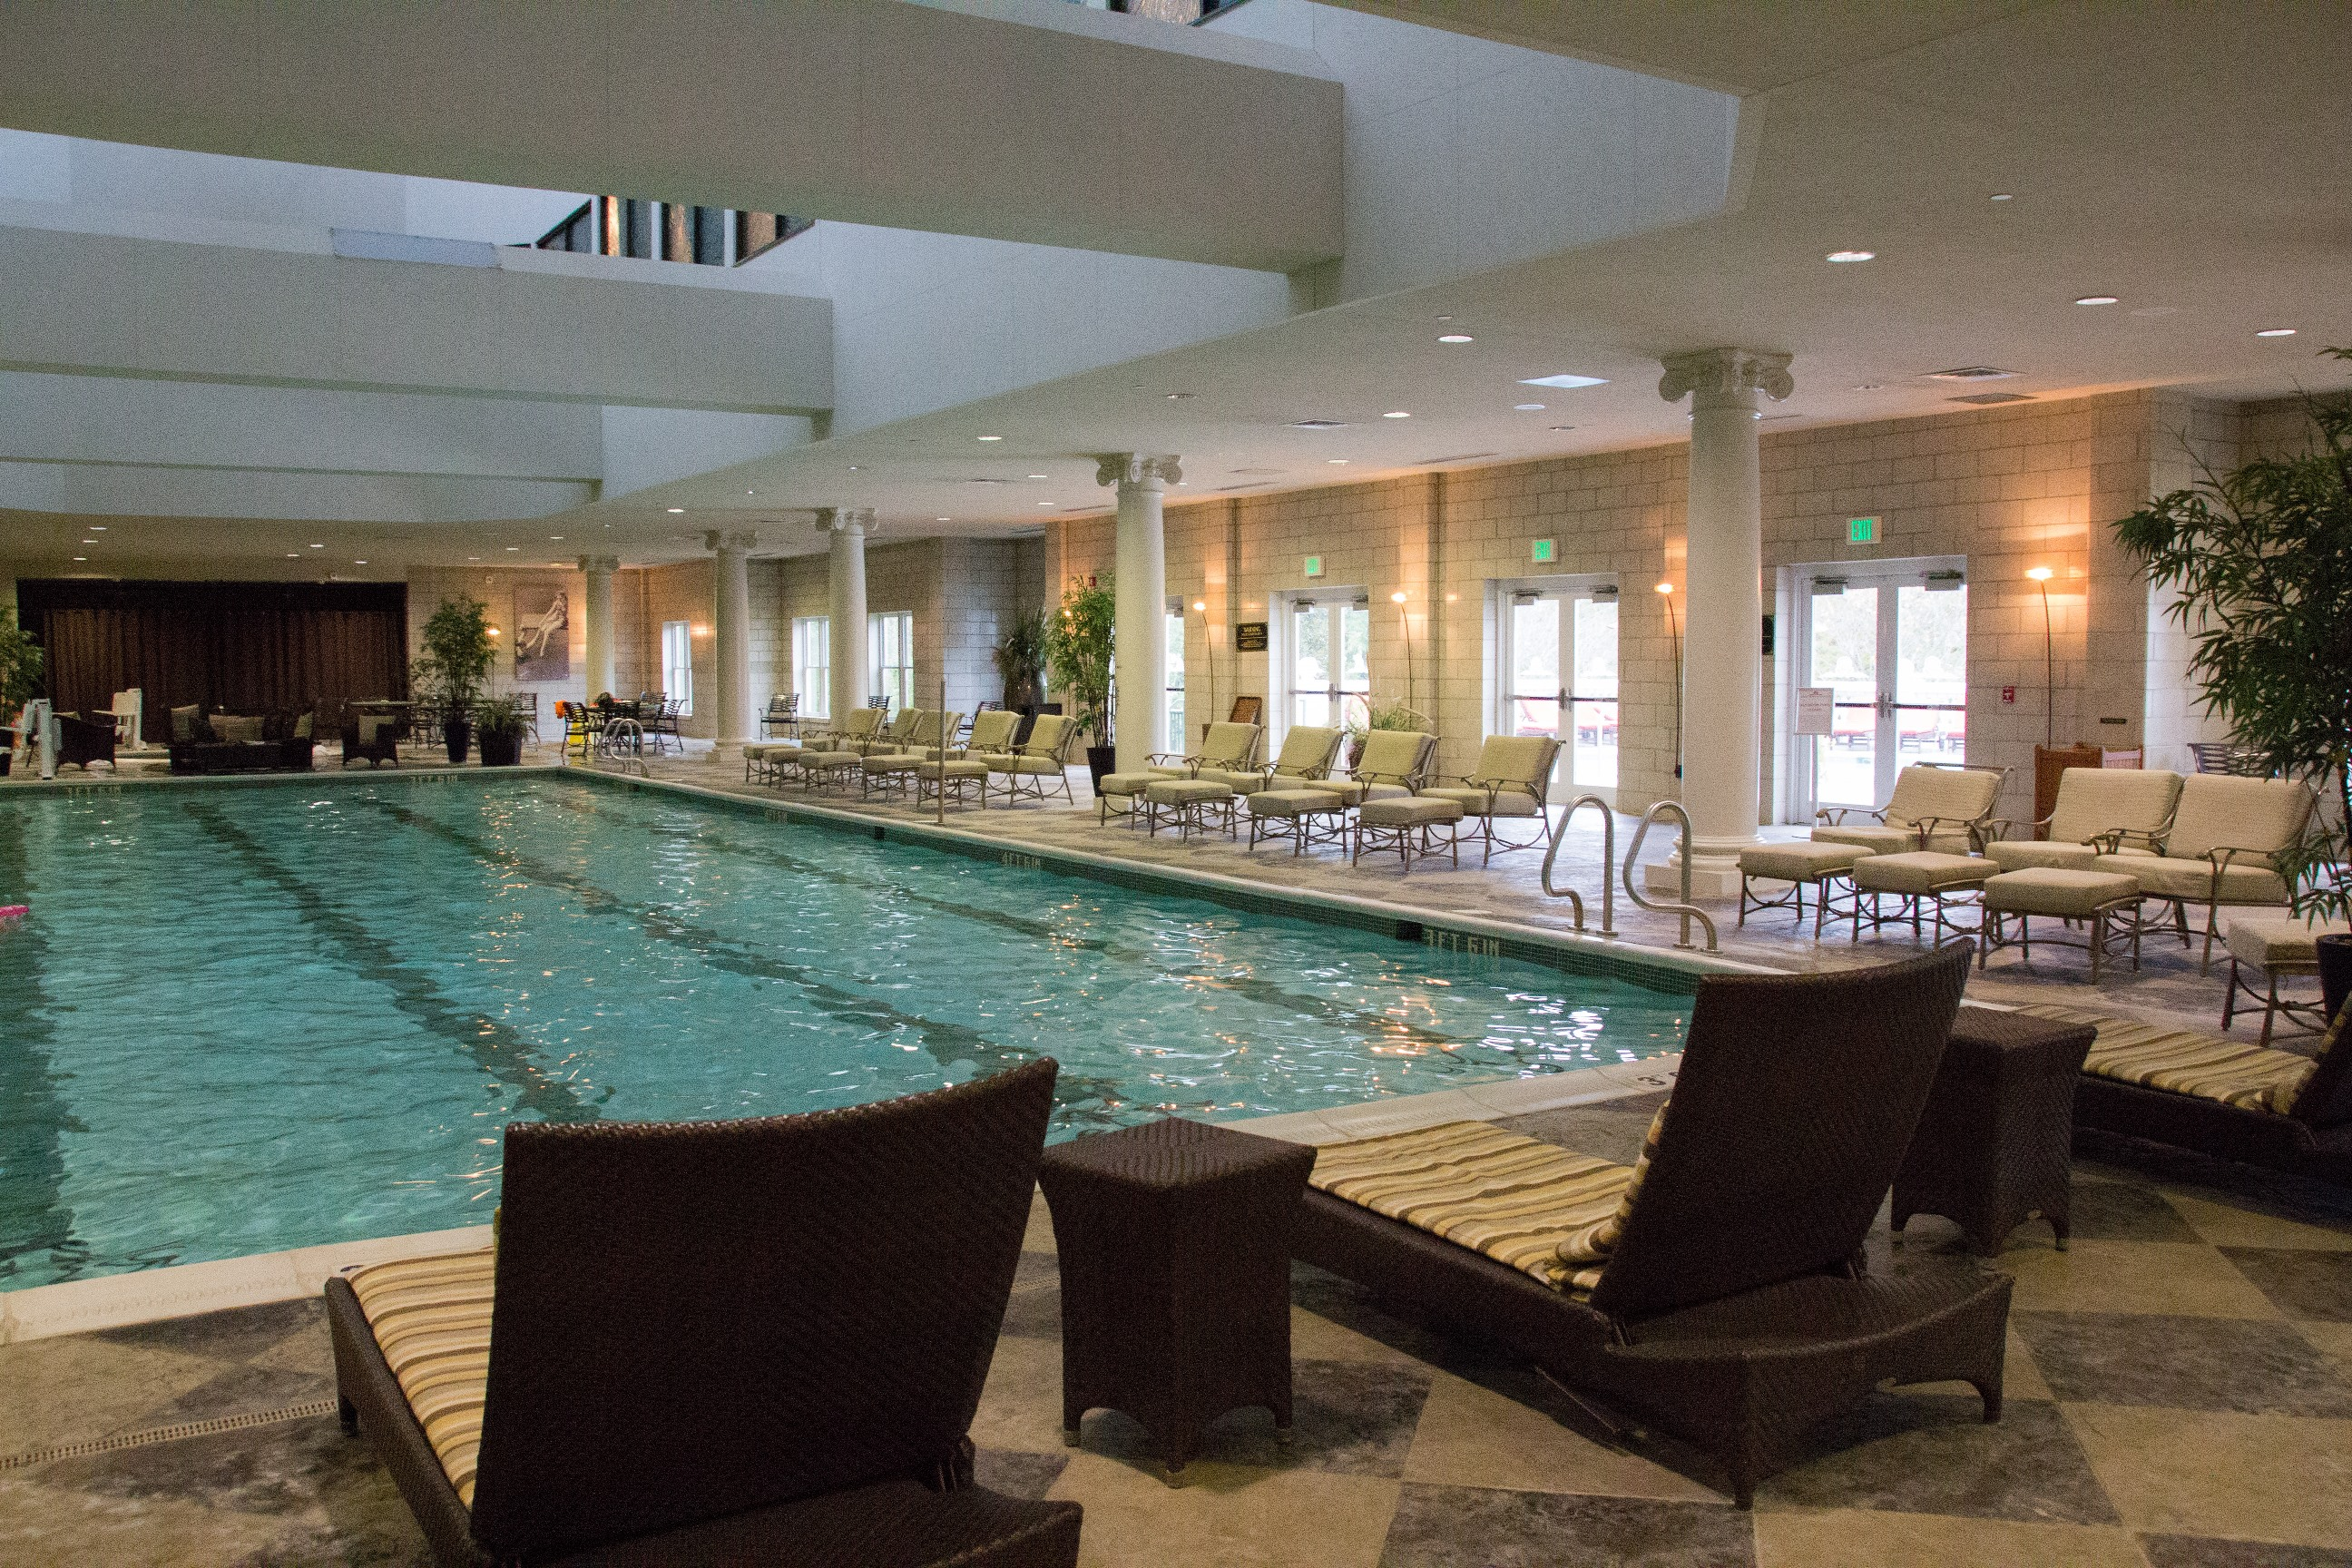 French Lick Lodging with great accommodations near the